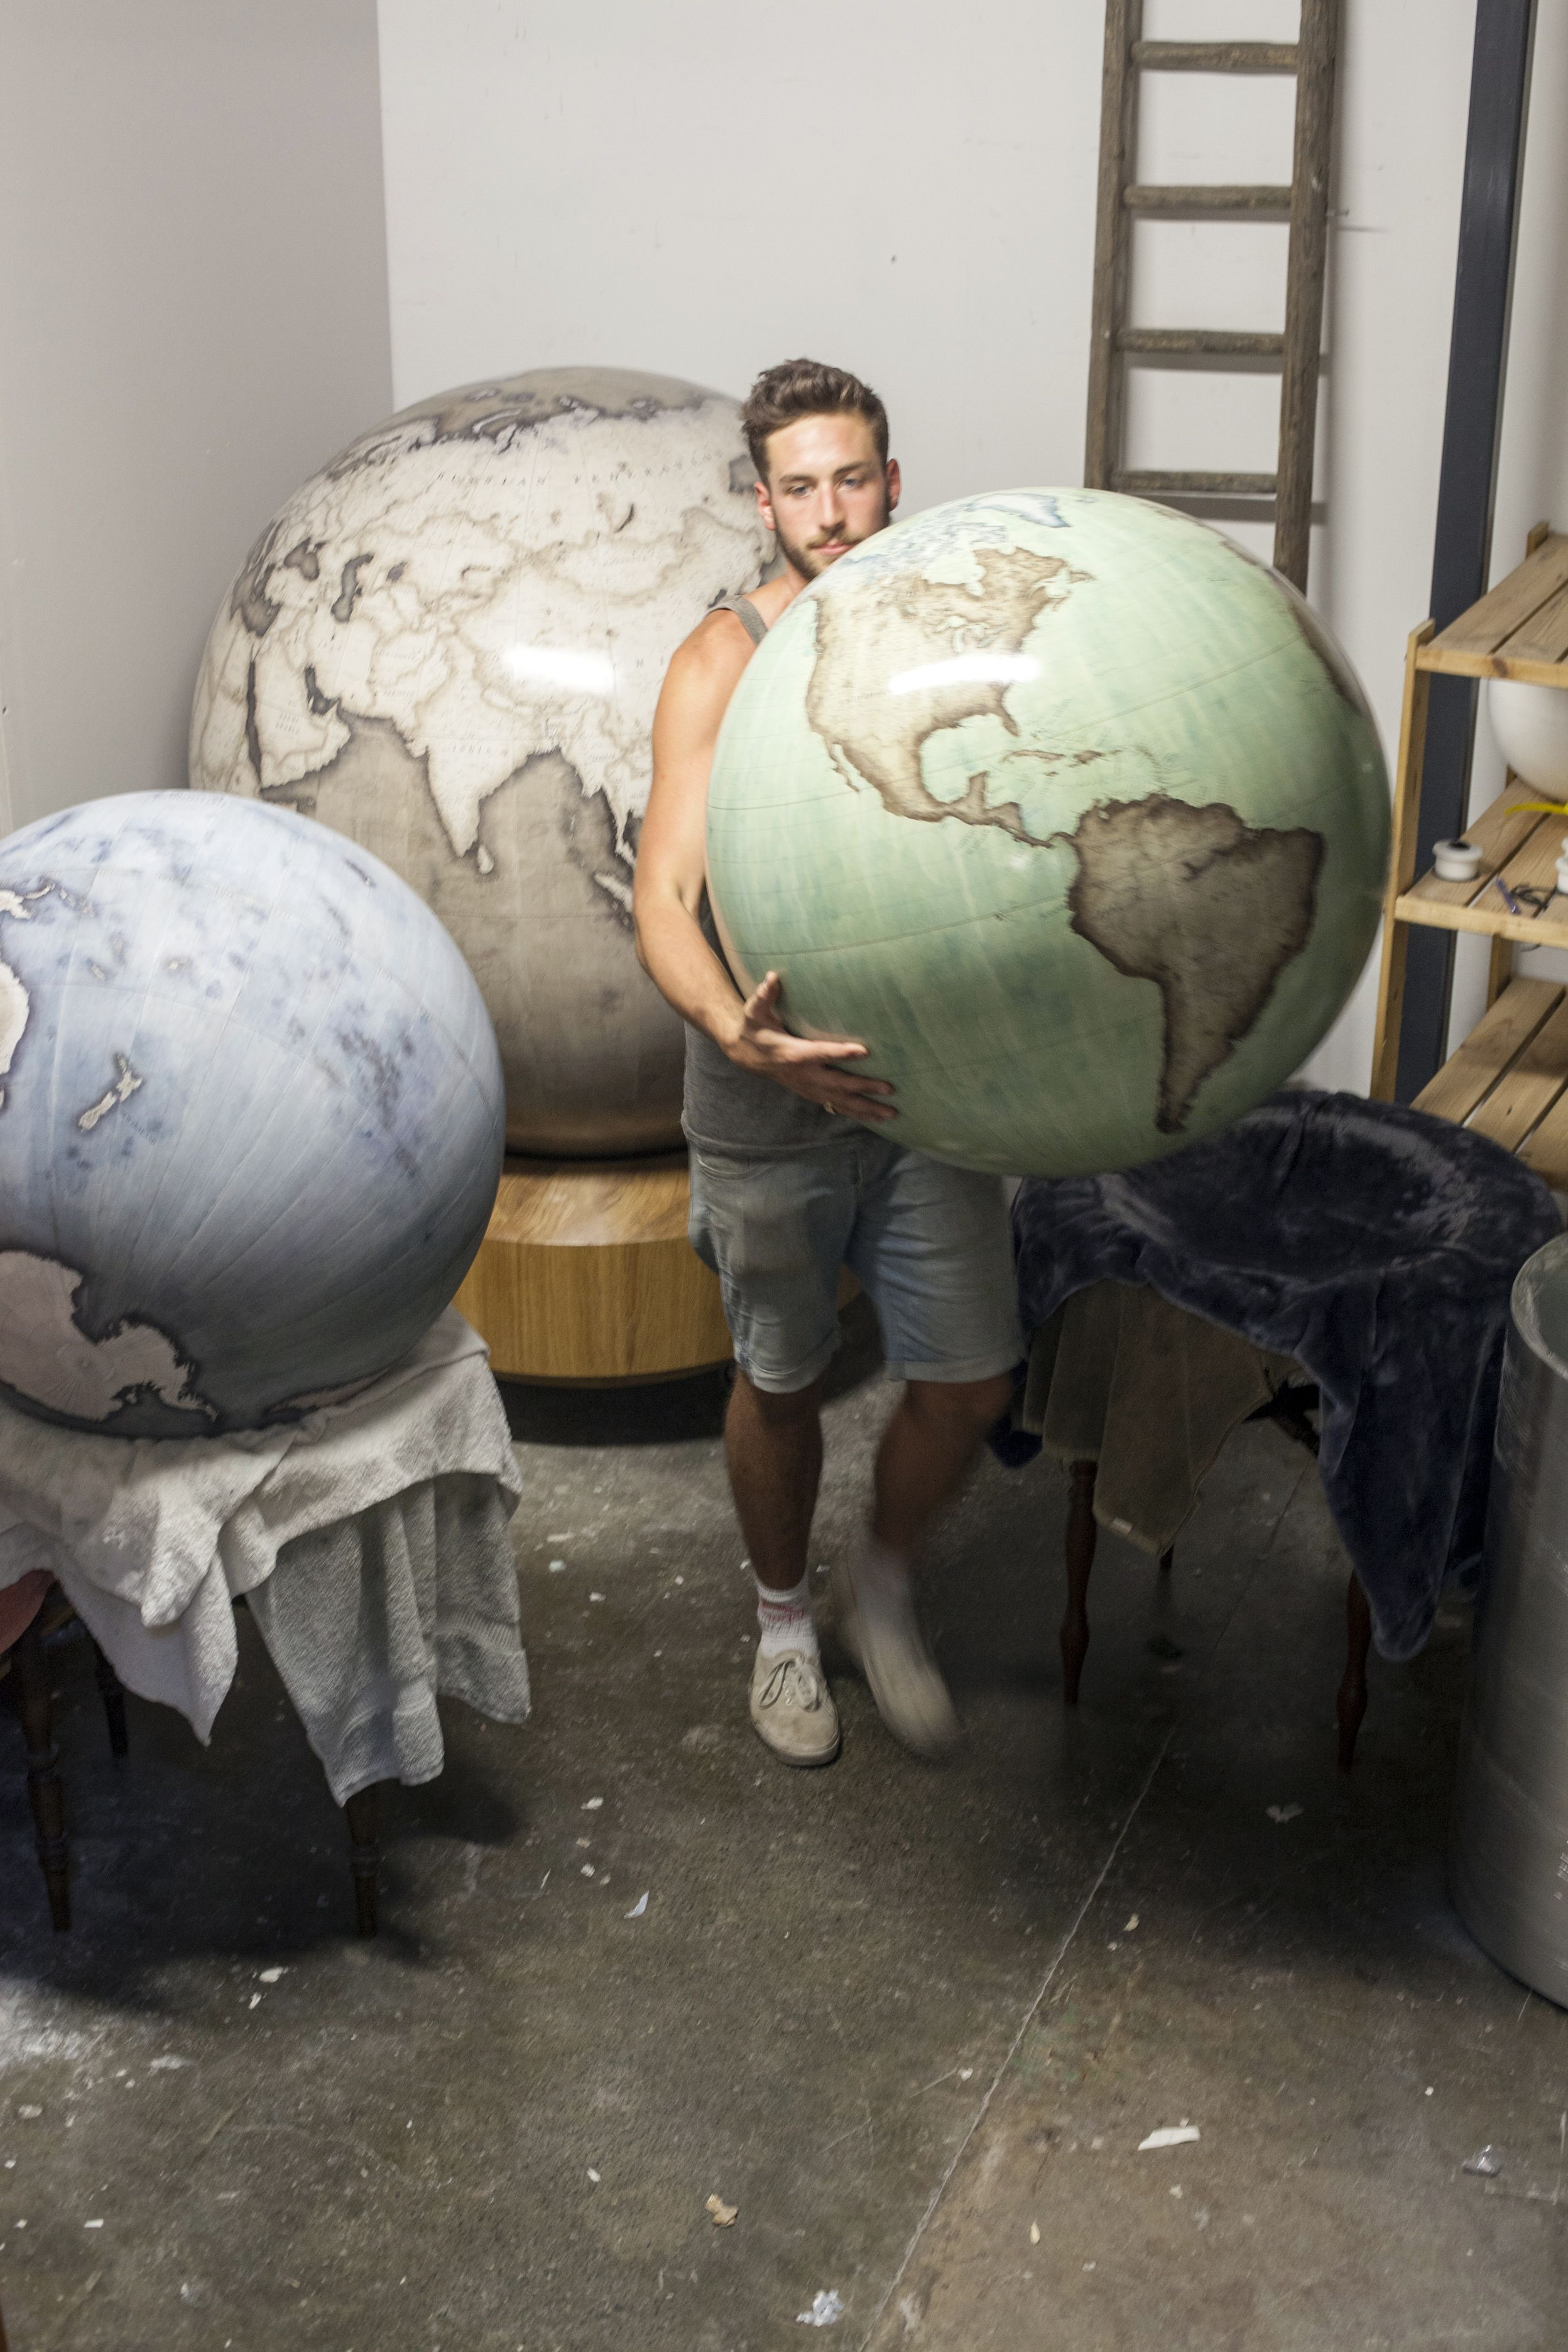 Bellerby and co globemakers hackney london uk stuart freedman globemakers hackney london uk stuart freedman gumiabroncs Image collections